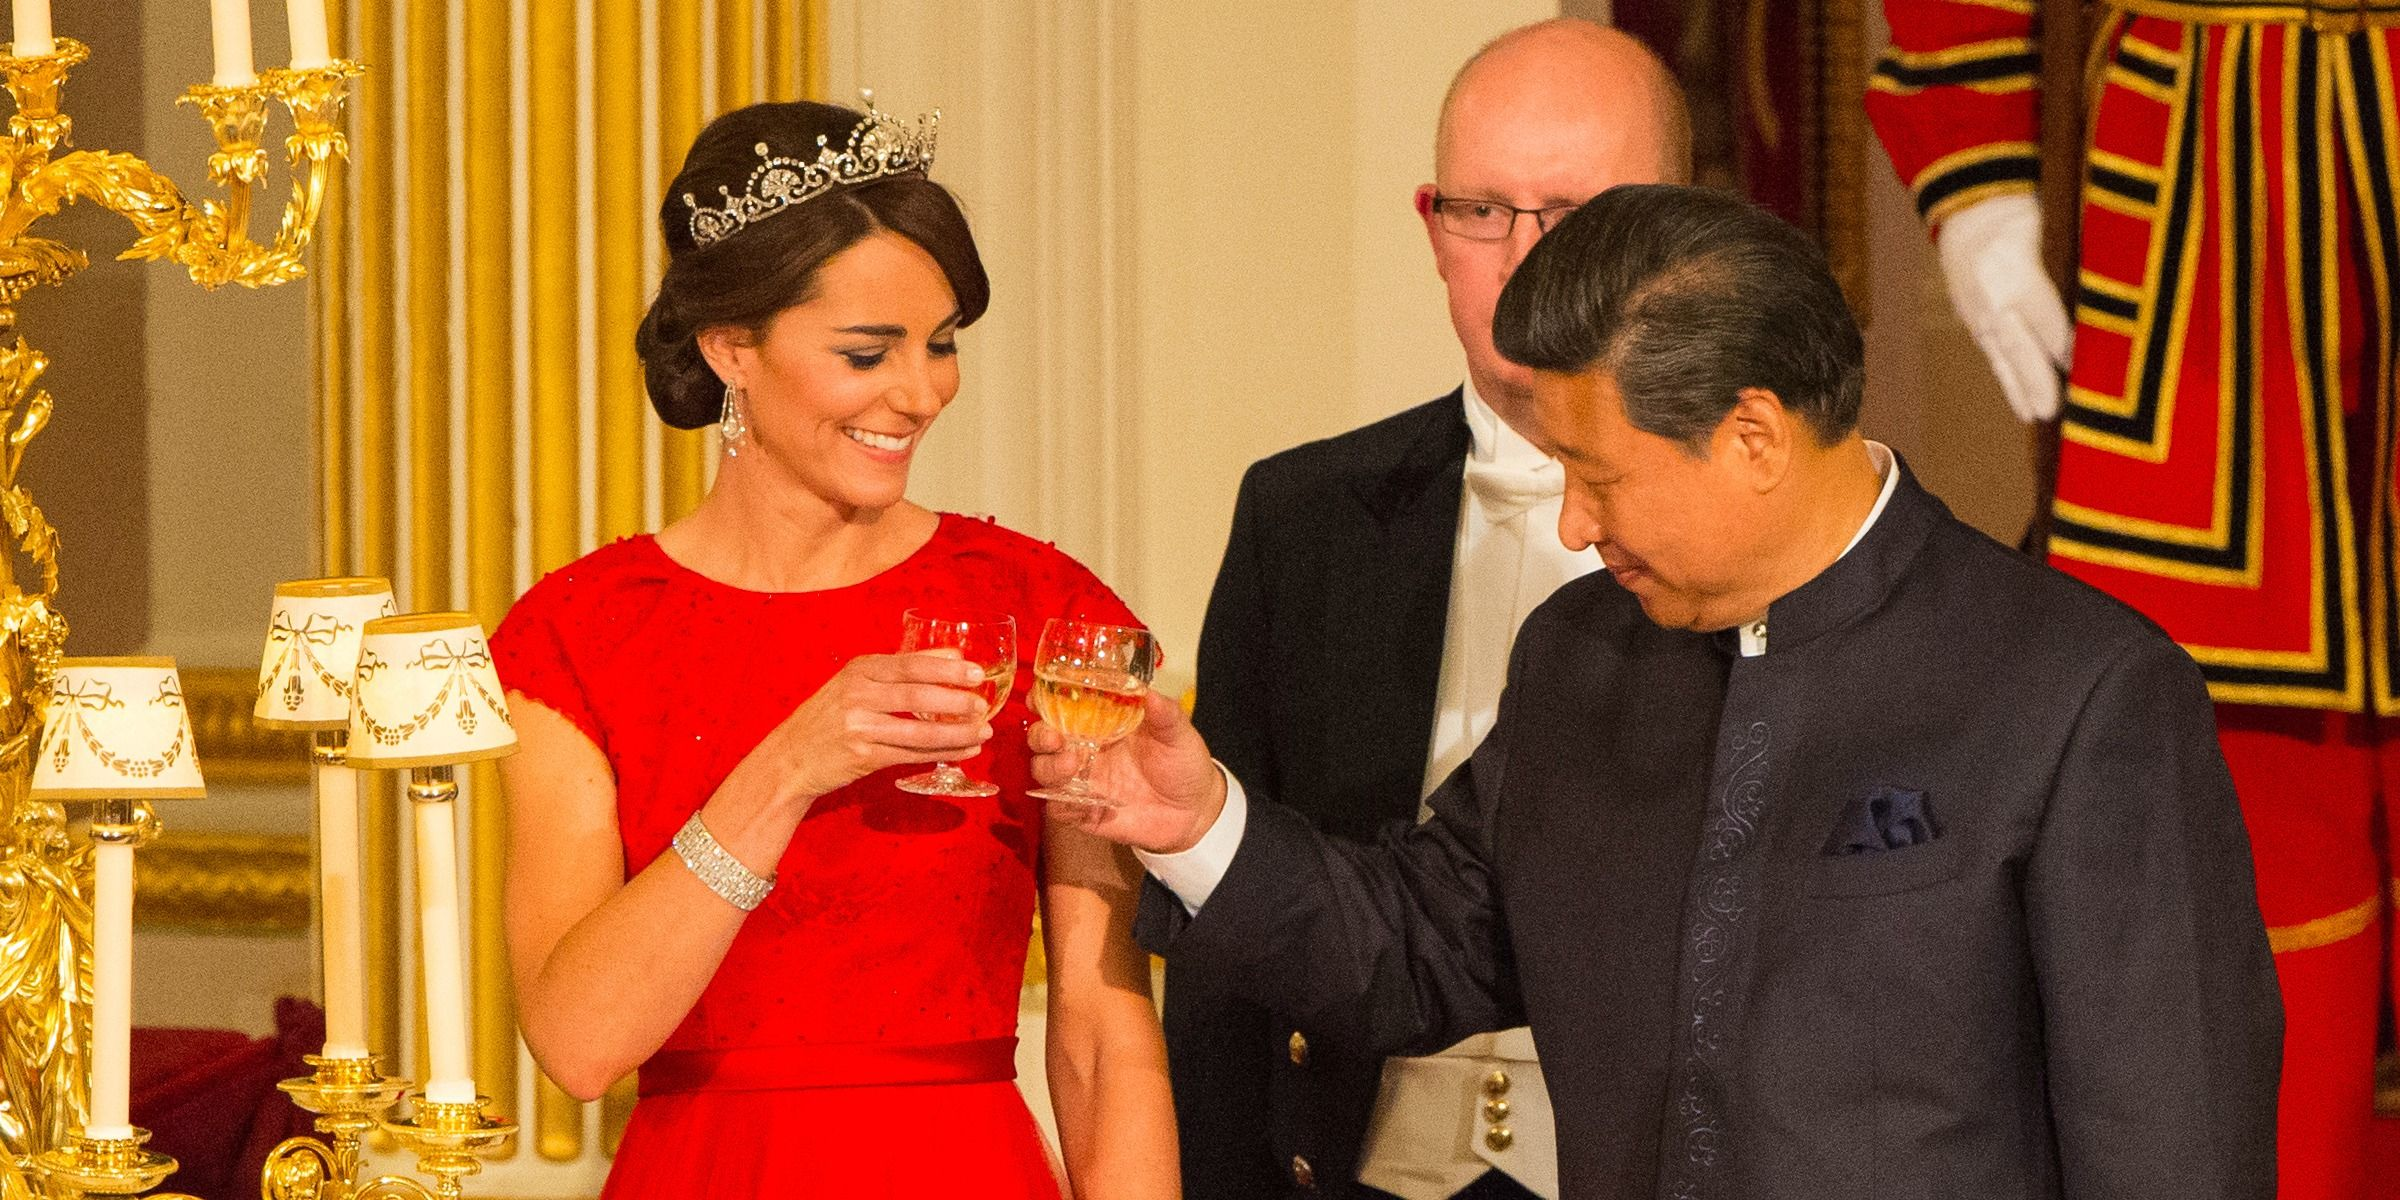 Why Kate Middleton Wore Red Dress And Tiara To First State Banquet